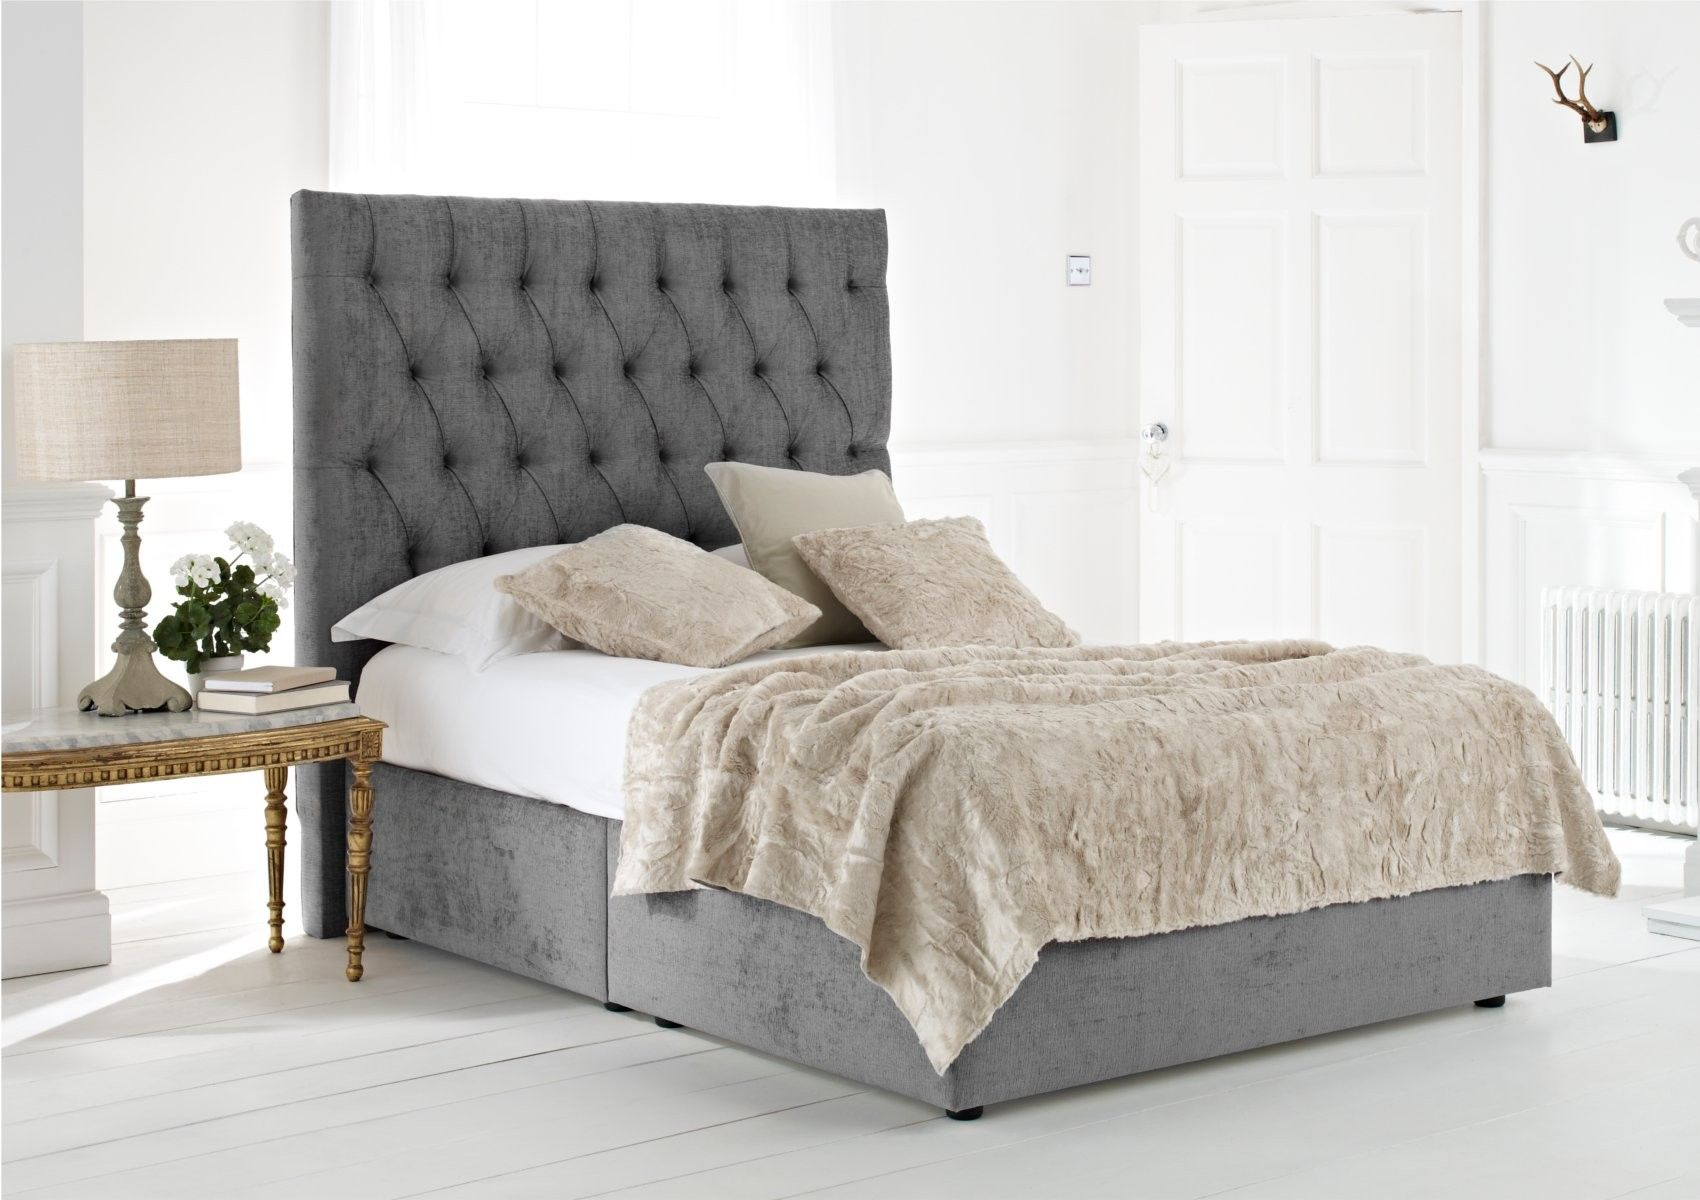 Kensington Upholstered Divan Base and Headboard Bed